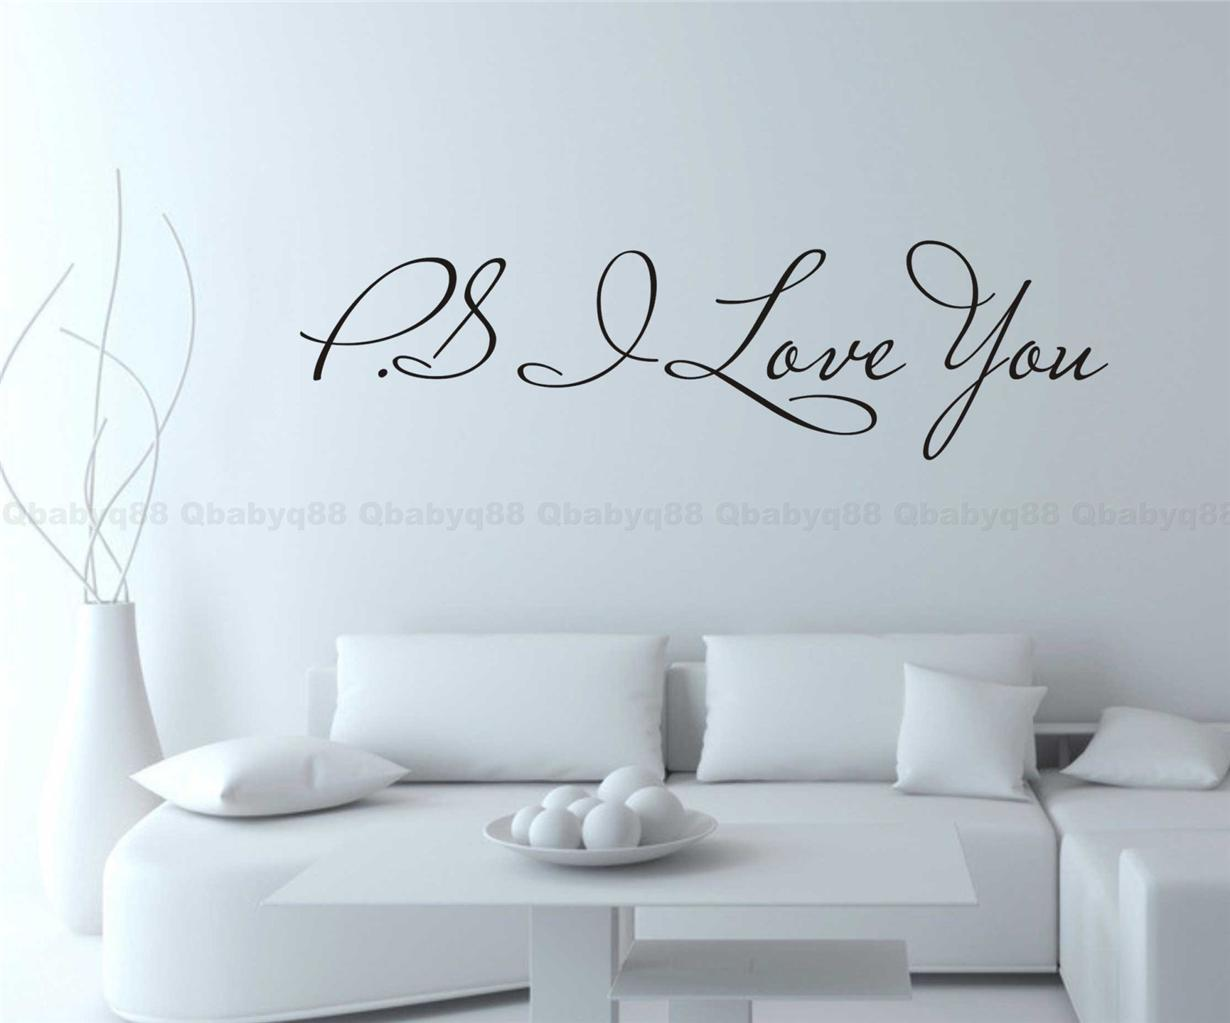 PS I love you Wall Quotes decal Removable stickers decor